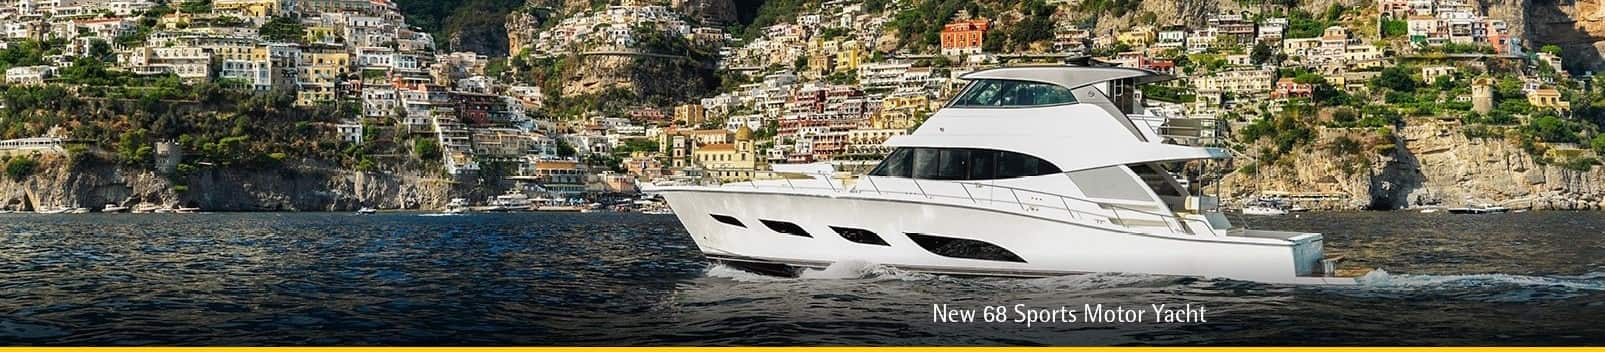 Riviera Yachts for Sale - homepage slider